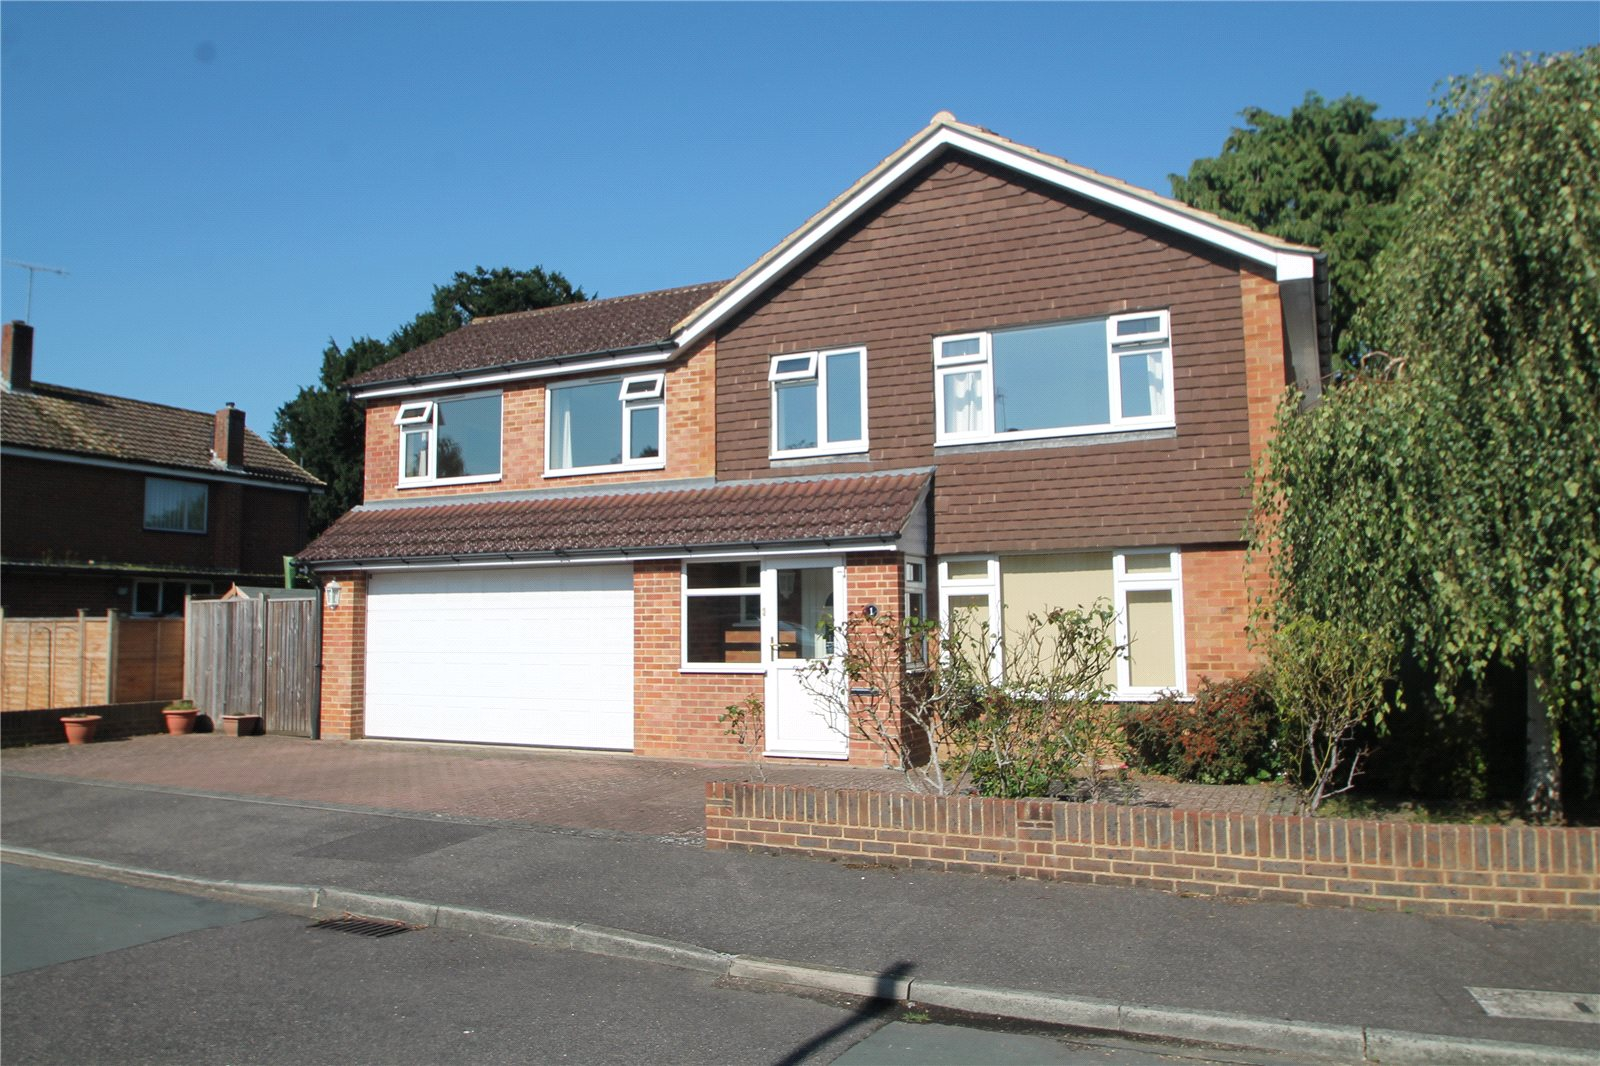 4 Bedrooms Detached House for sale in Loampits Close Tonbridge Kent TN9